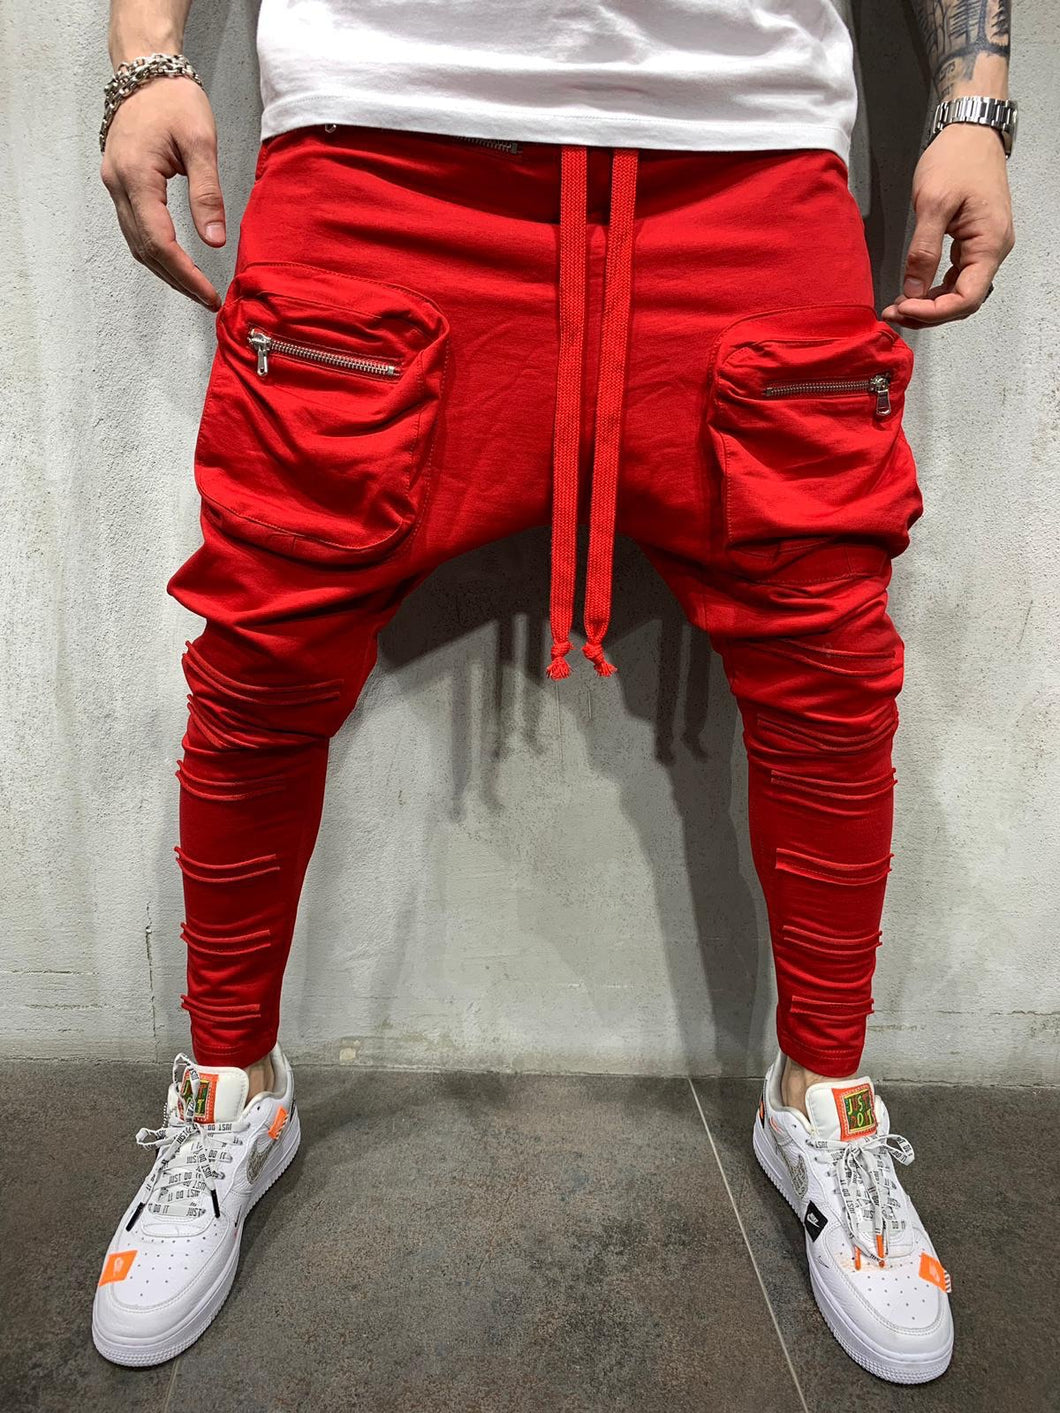 Red Front Pocket Baggy Joggers AY519 Streetwear Mens Jogger Pants - Sneakerjeans